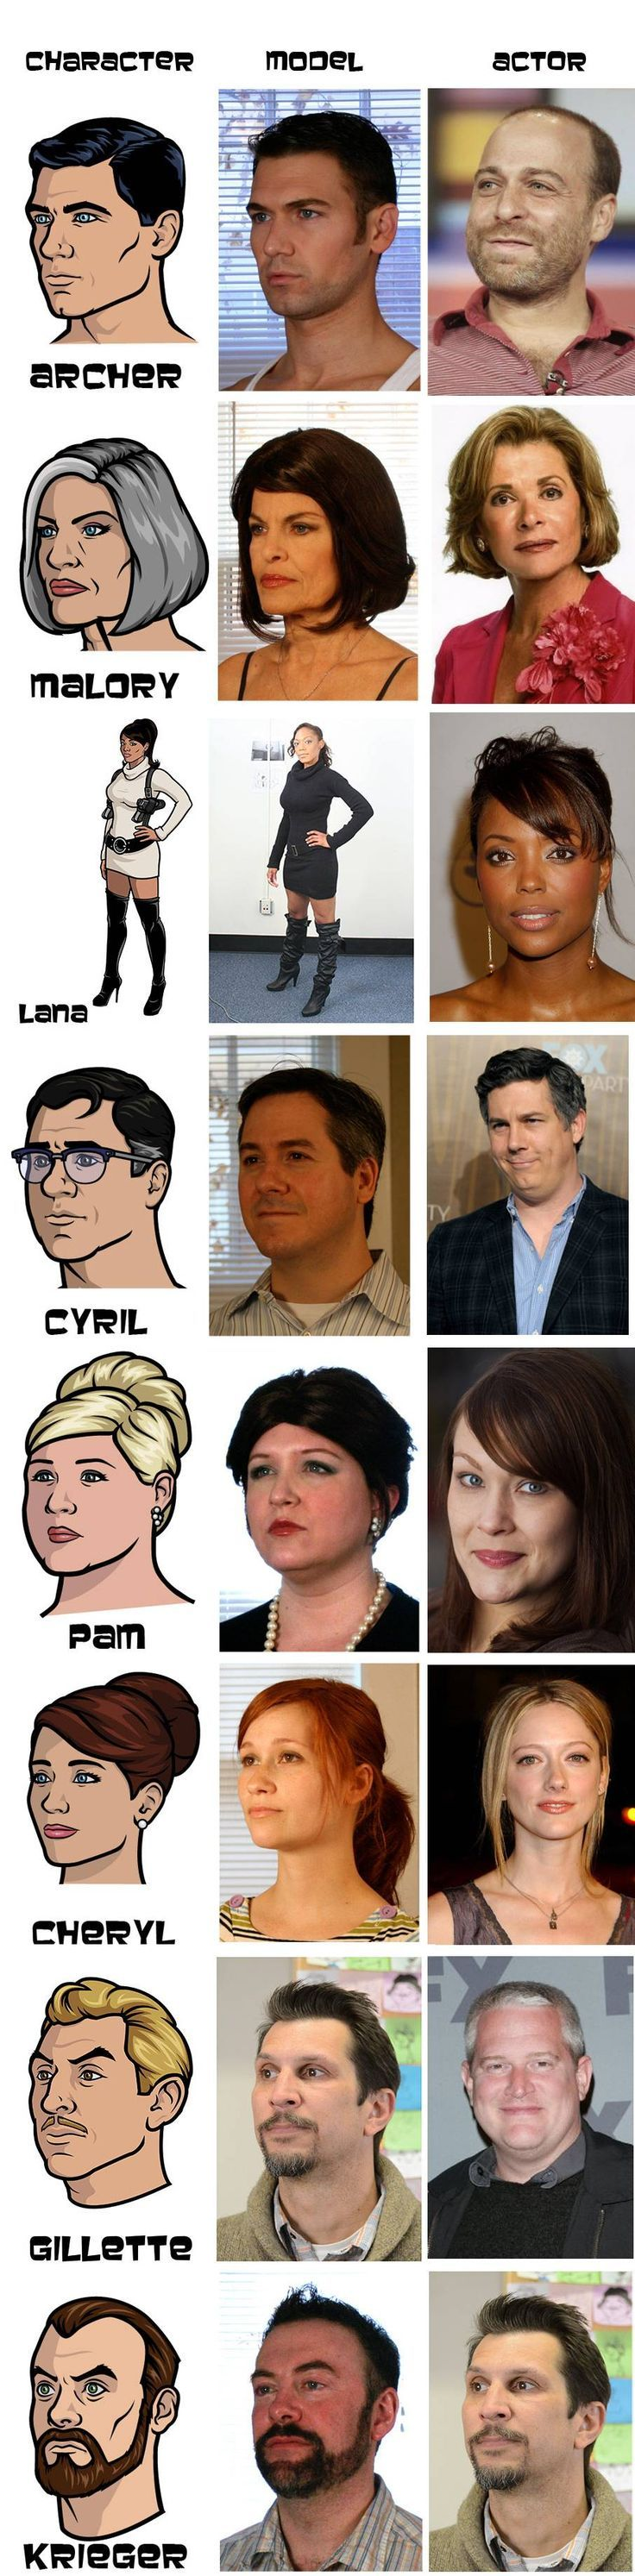 All of the carton people look better than the real people and models lol